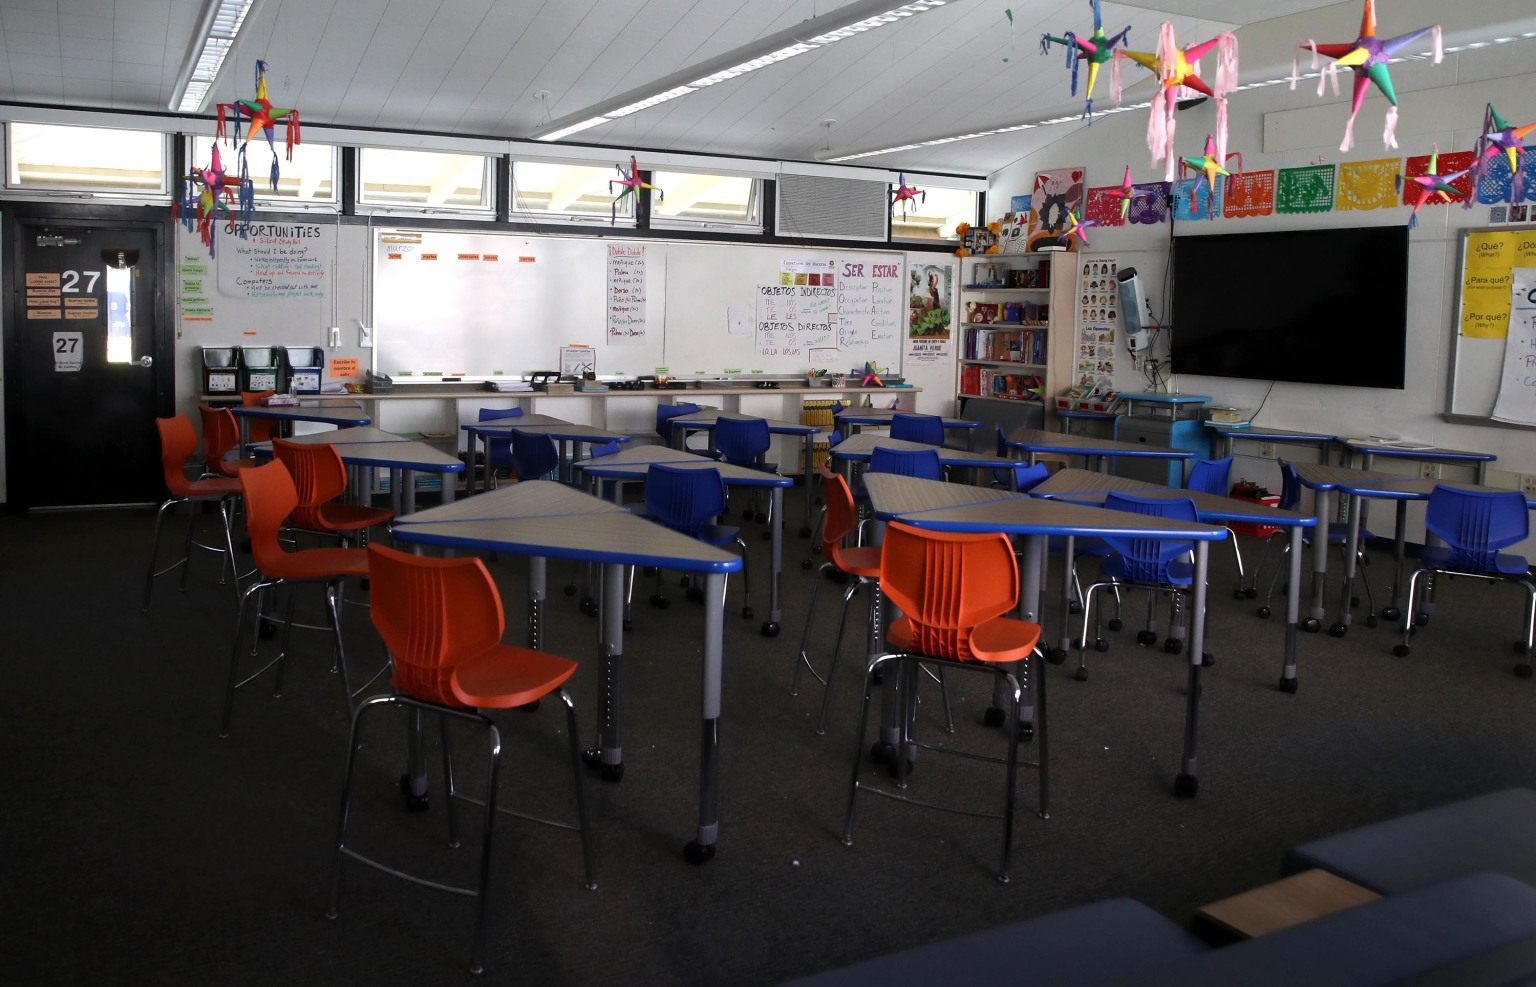 DSUSD approves doubling in-person learning days, new schedule starts May 3rd